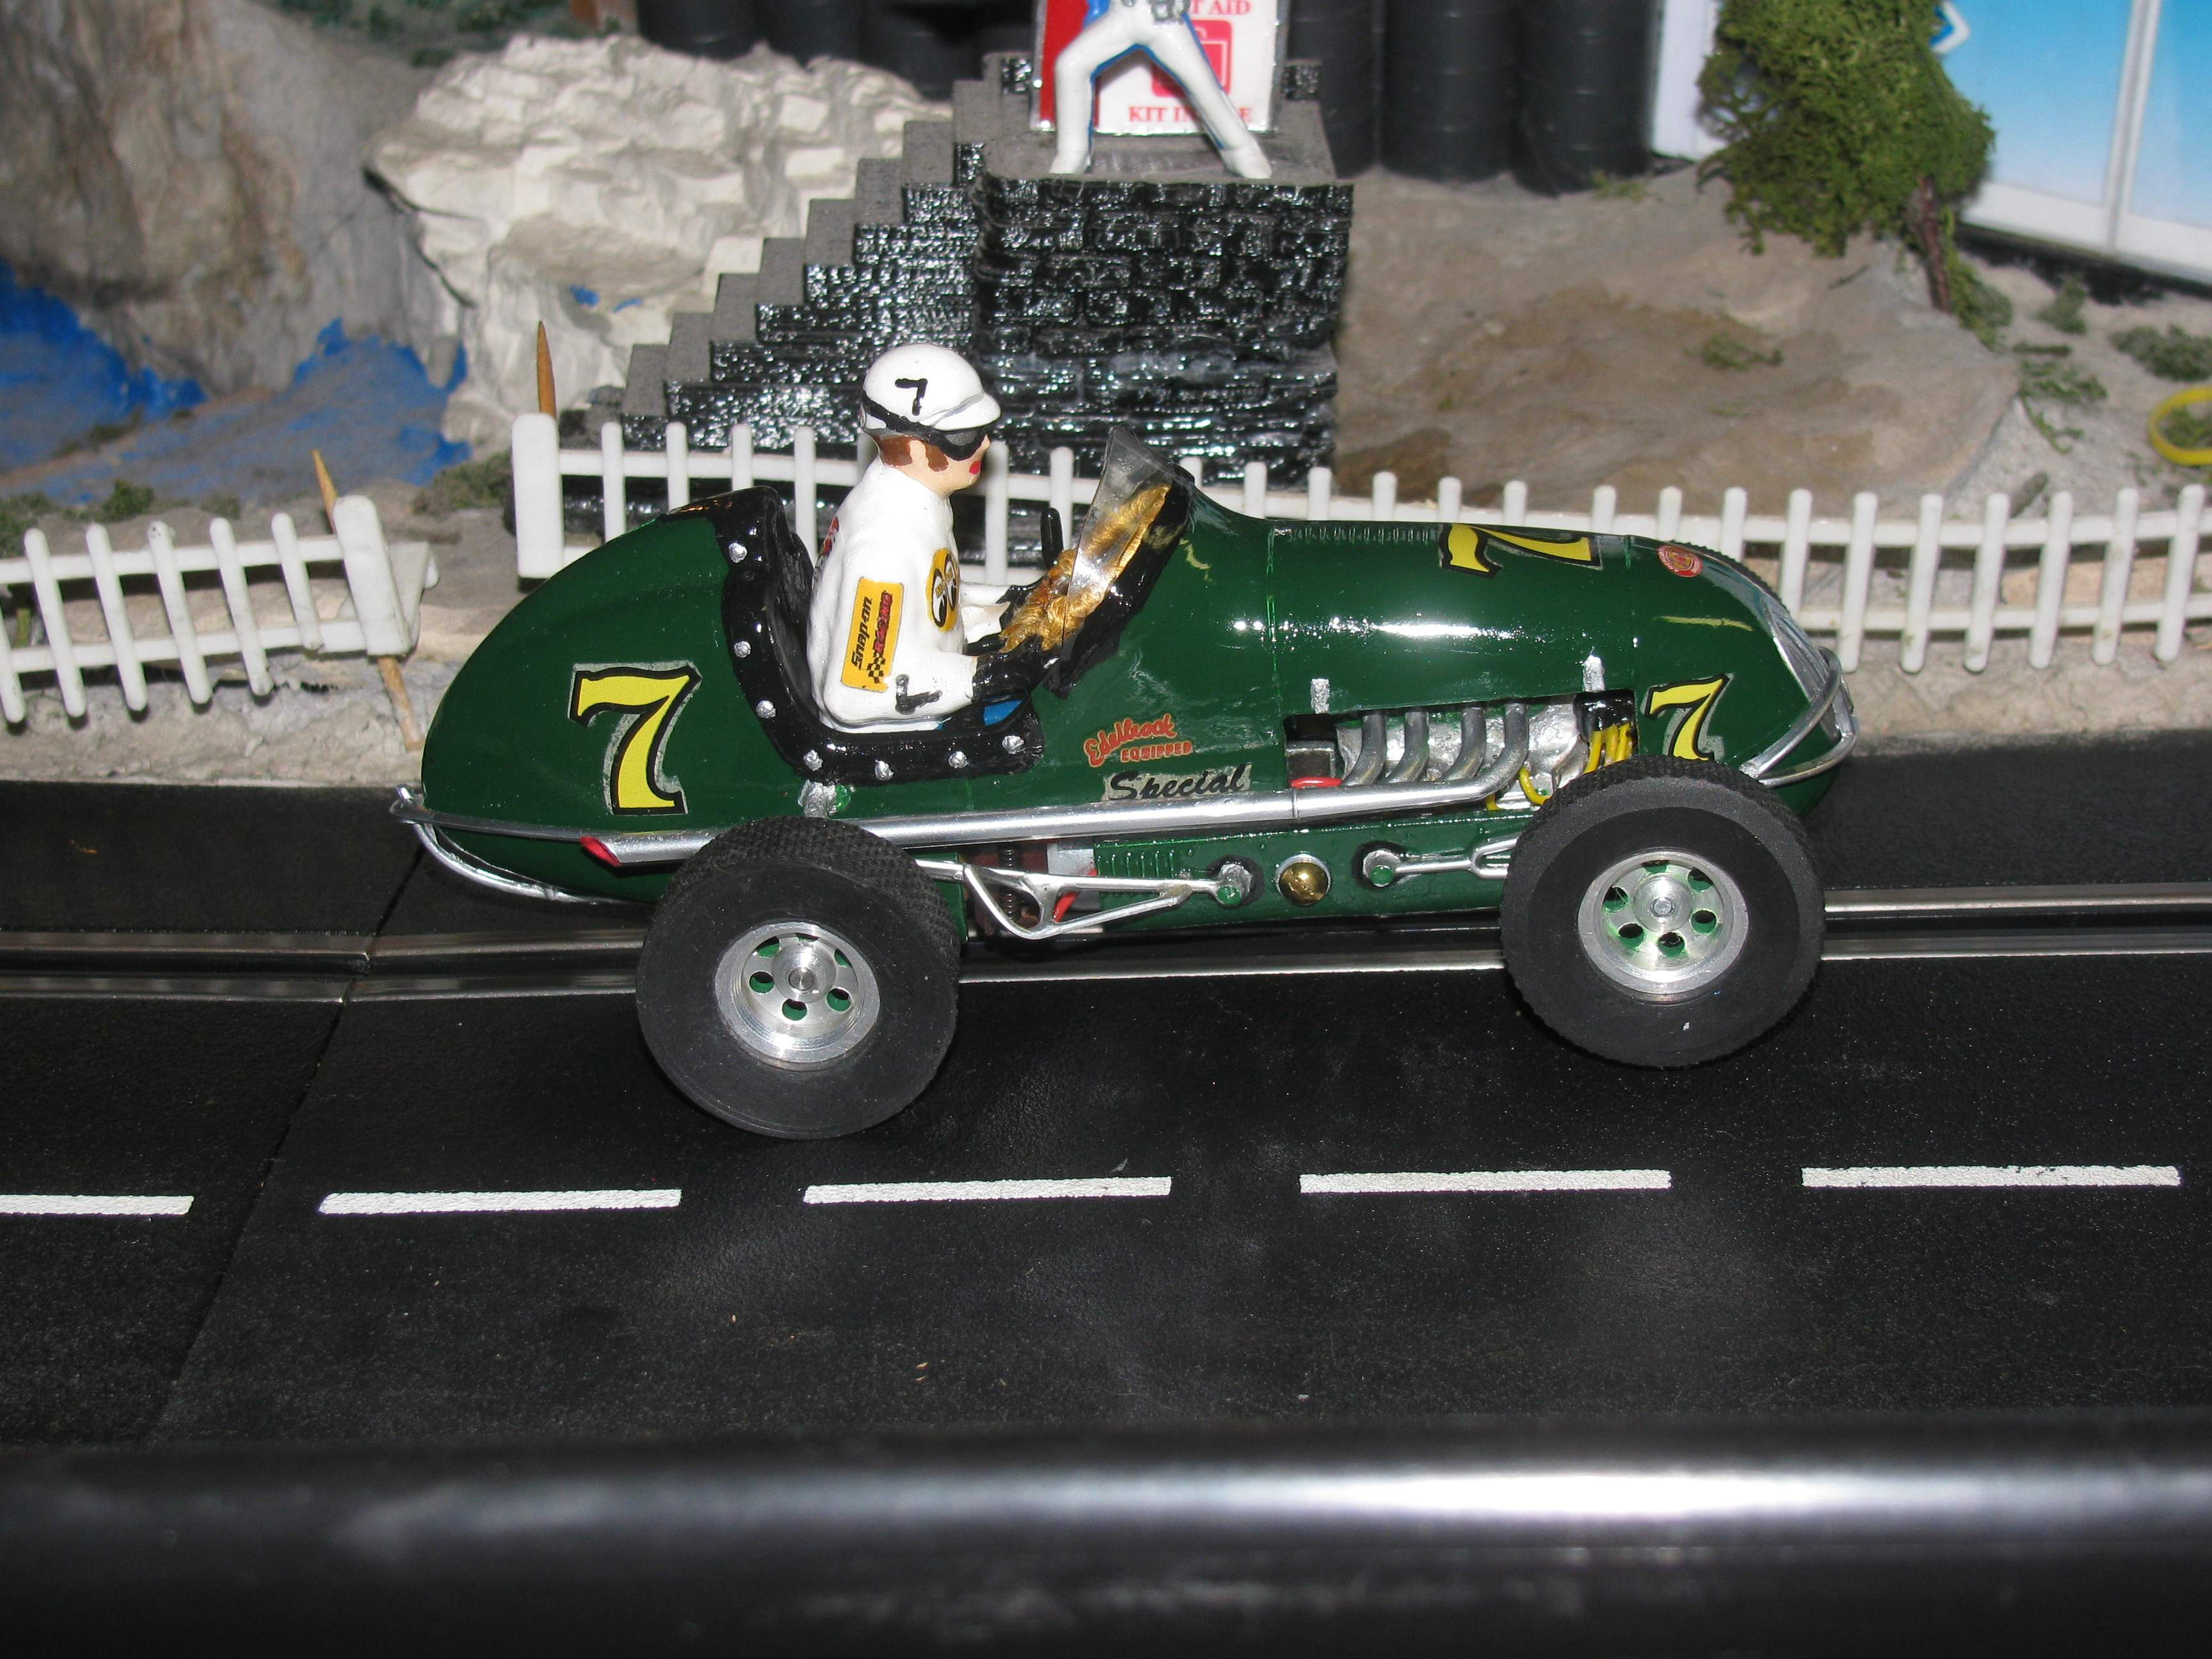 * SOLD * * SALE FOR CHARLES E. ONLY * Monogram Midget Racer Emerald Arrow Special 7 Slot Car 1/24 Scale